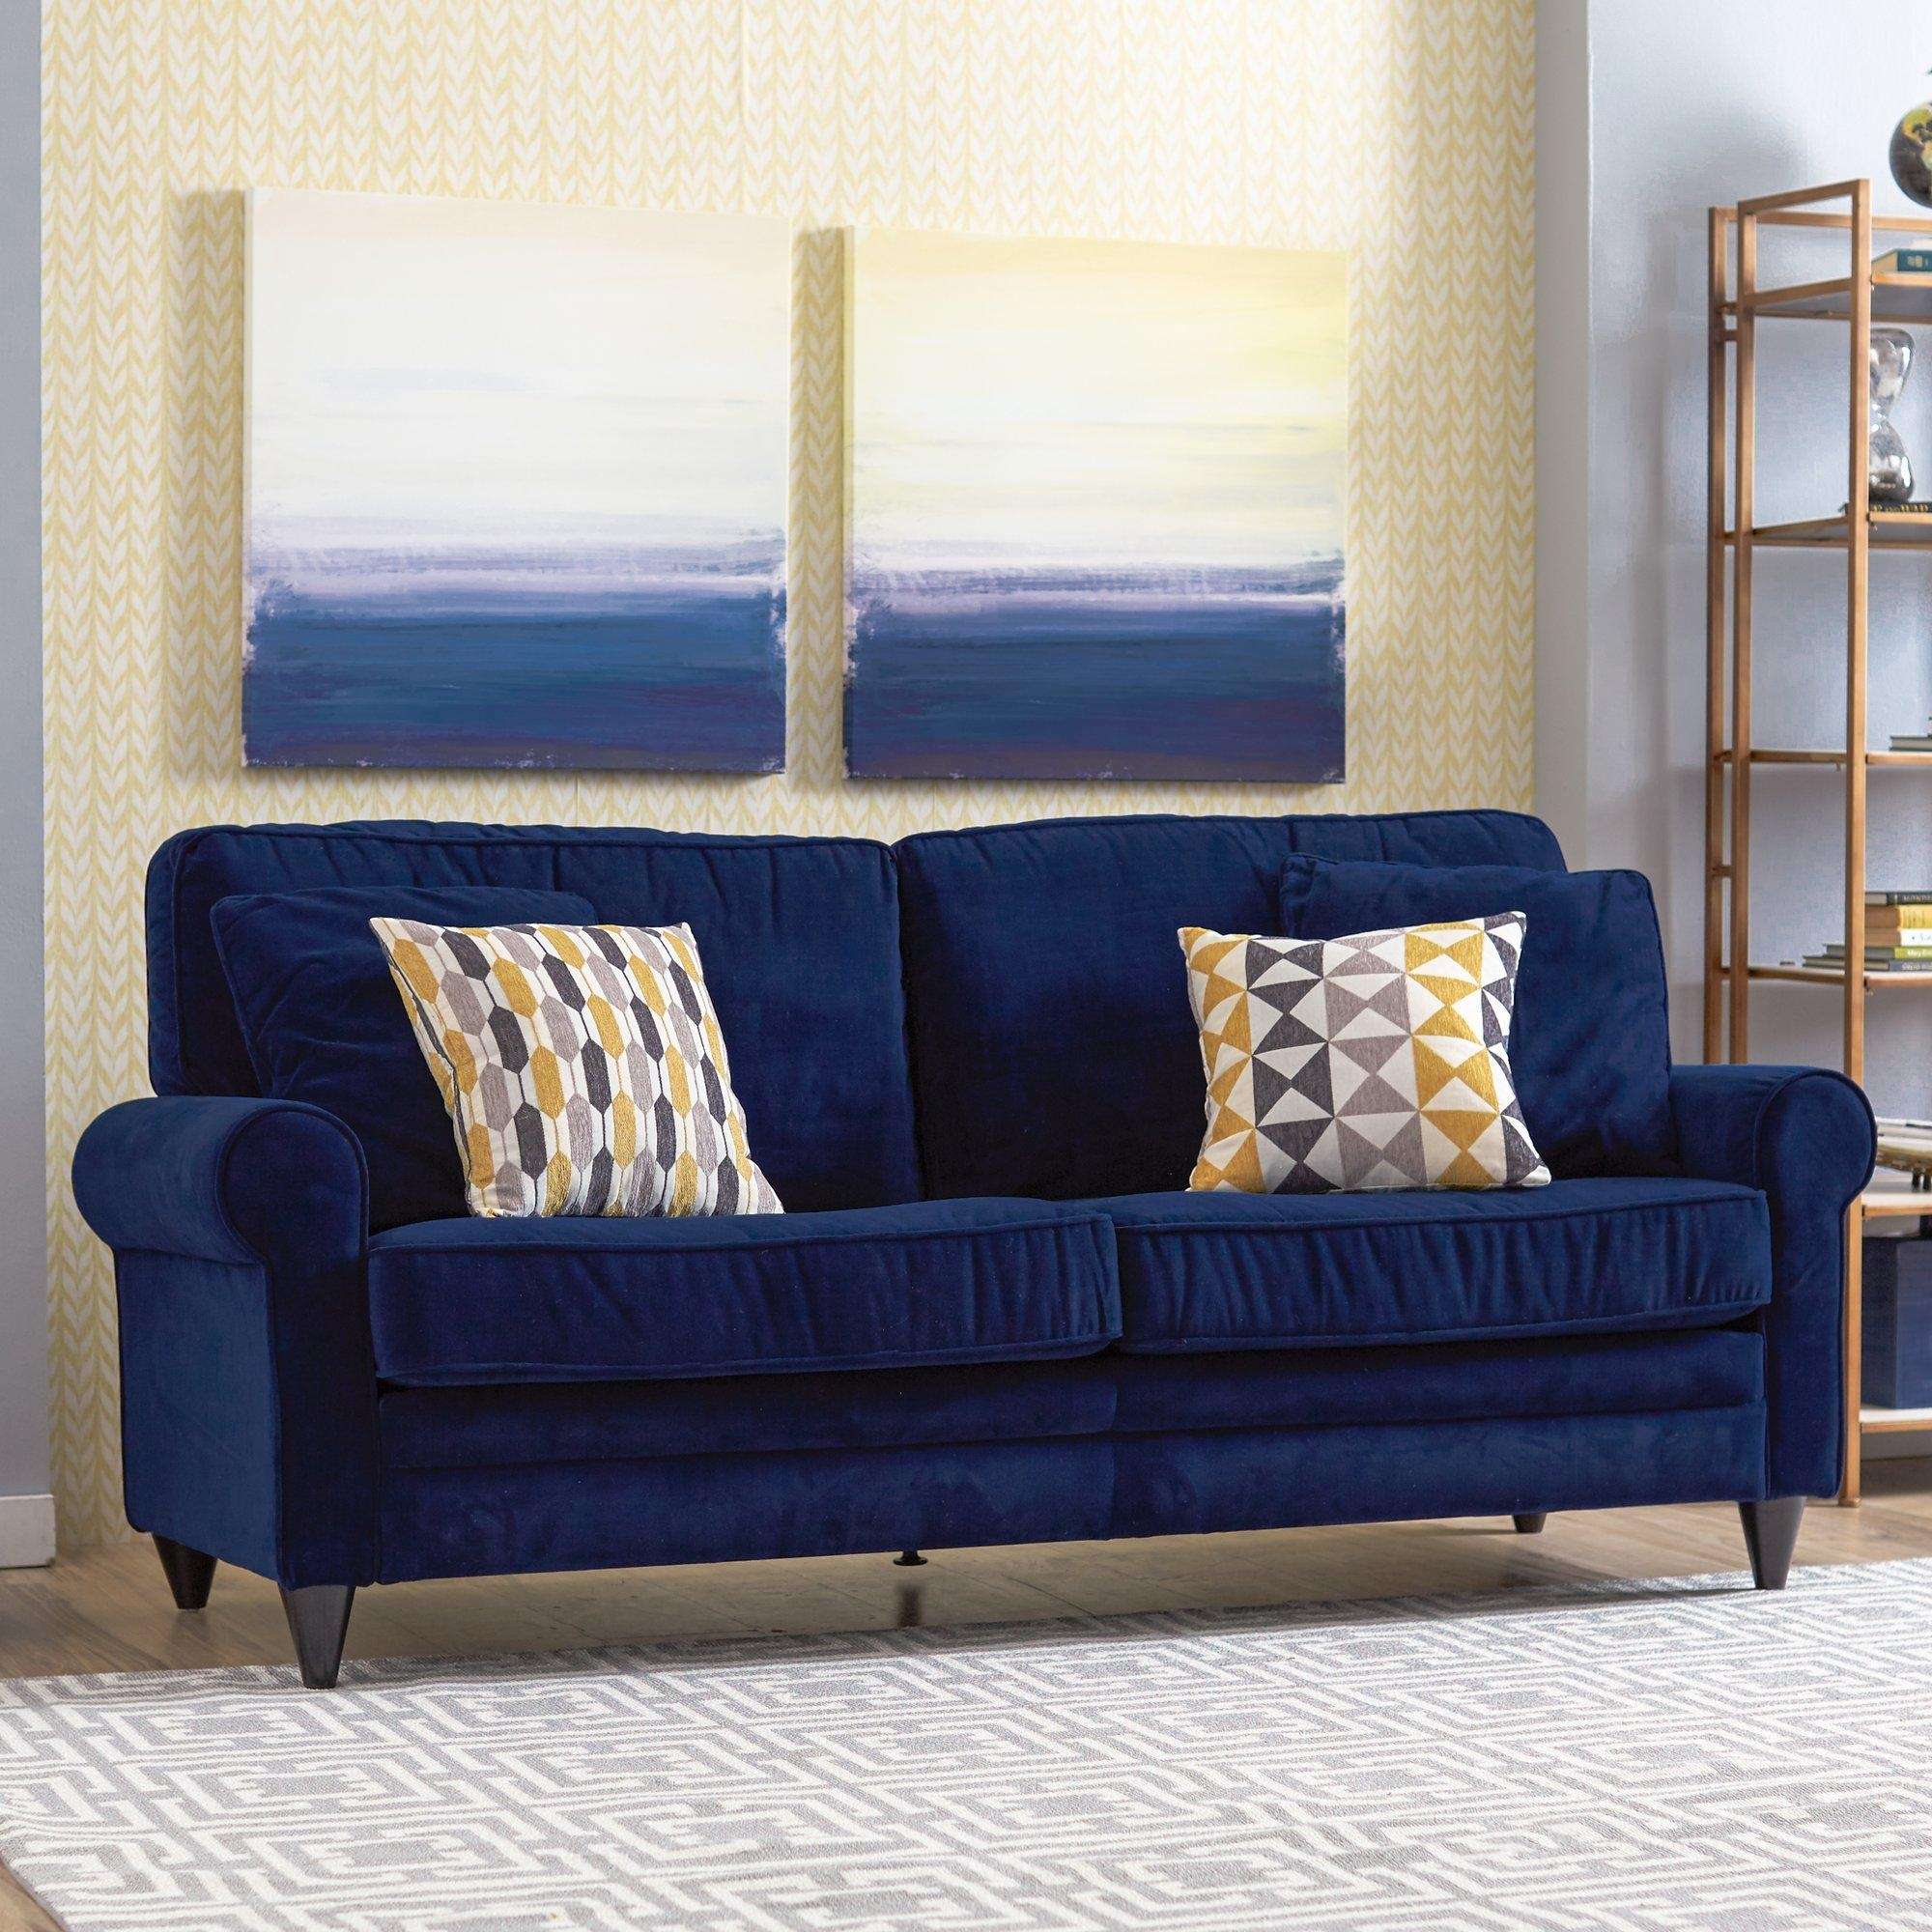 Blue Denim Sofa | Wayfair | Tehranmix Decoration Pertaining To Blue Denim Sofas (Image 4 of 20)